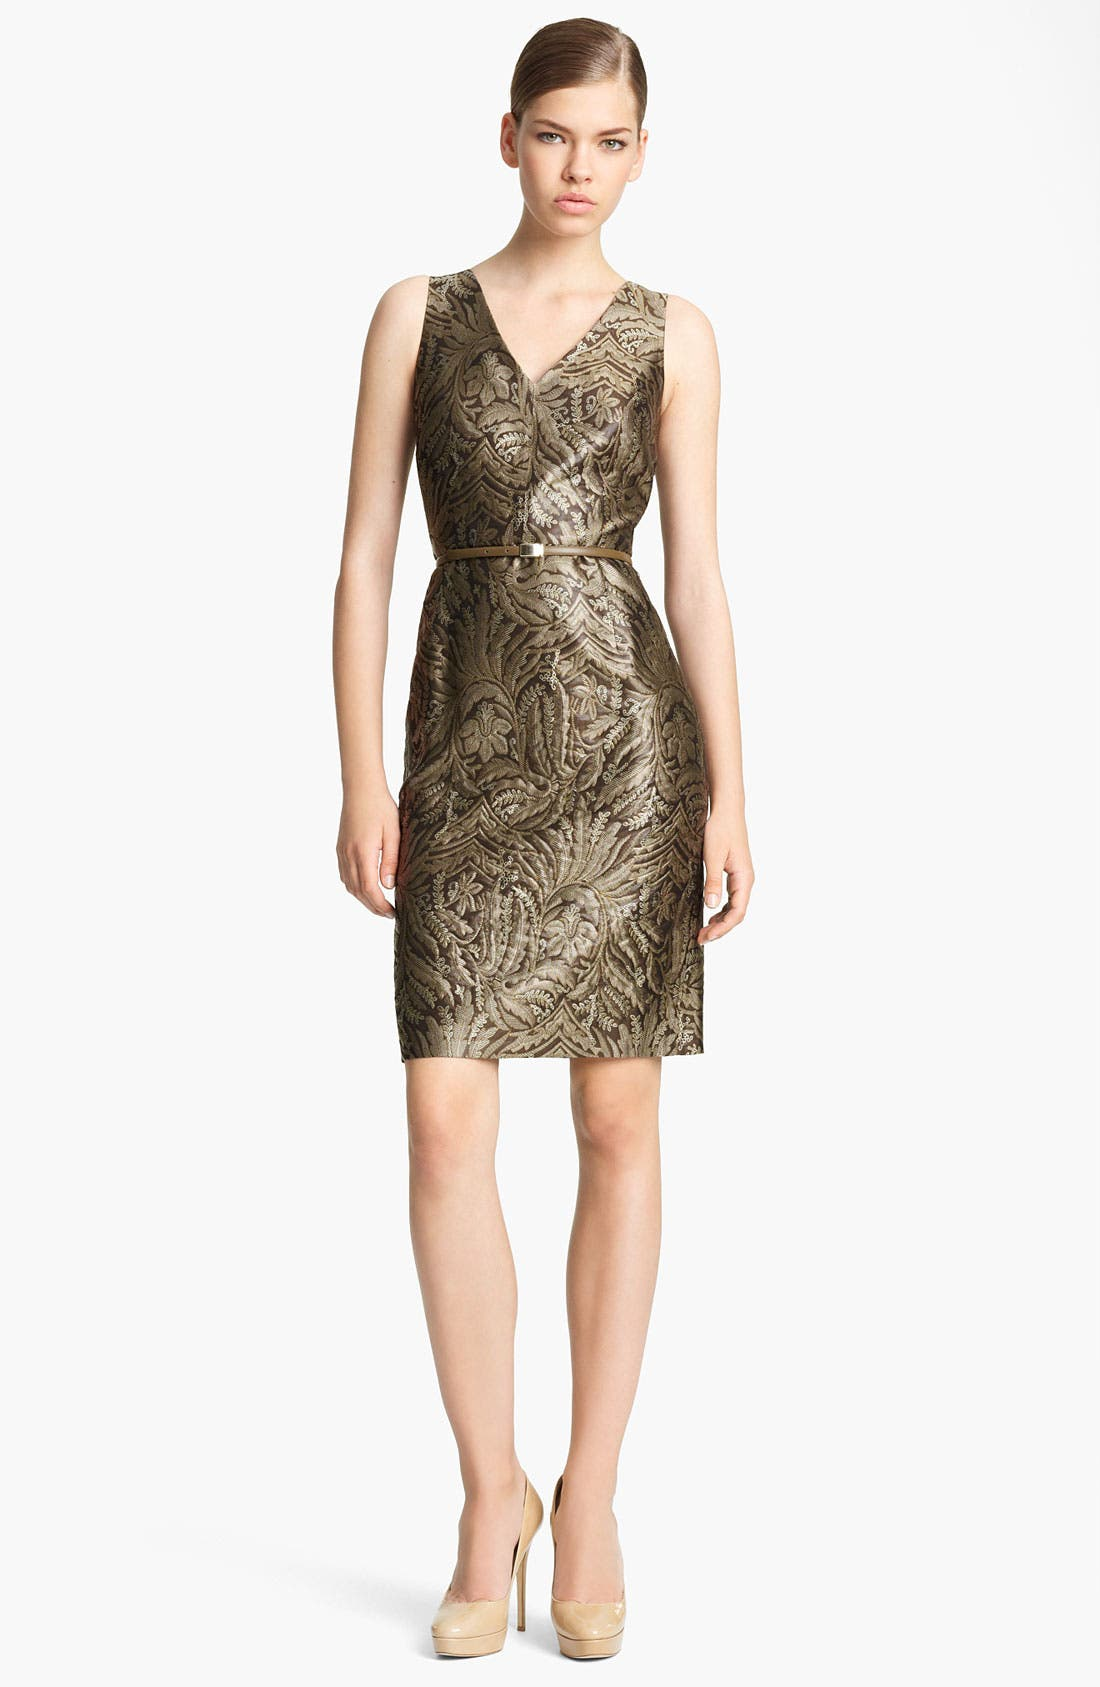 Main Image - Max Mara 'Cera' Belted Floral Brocade Dress